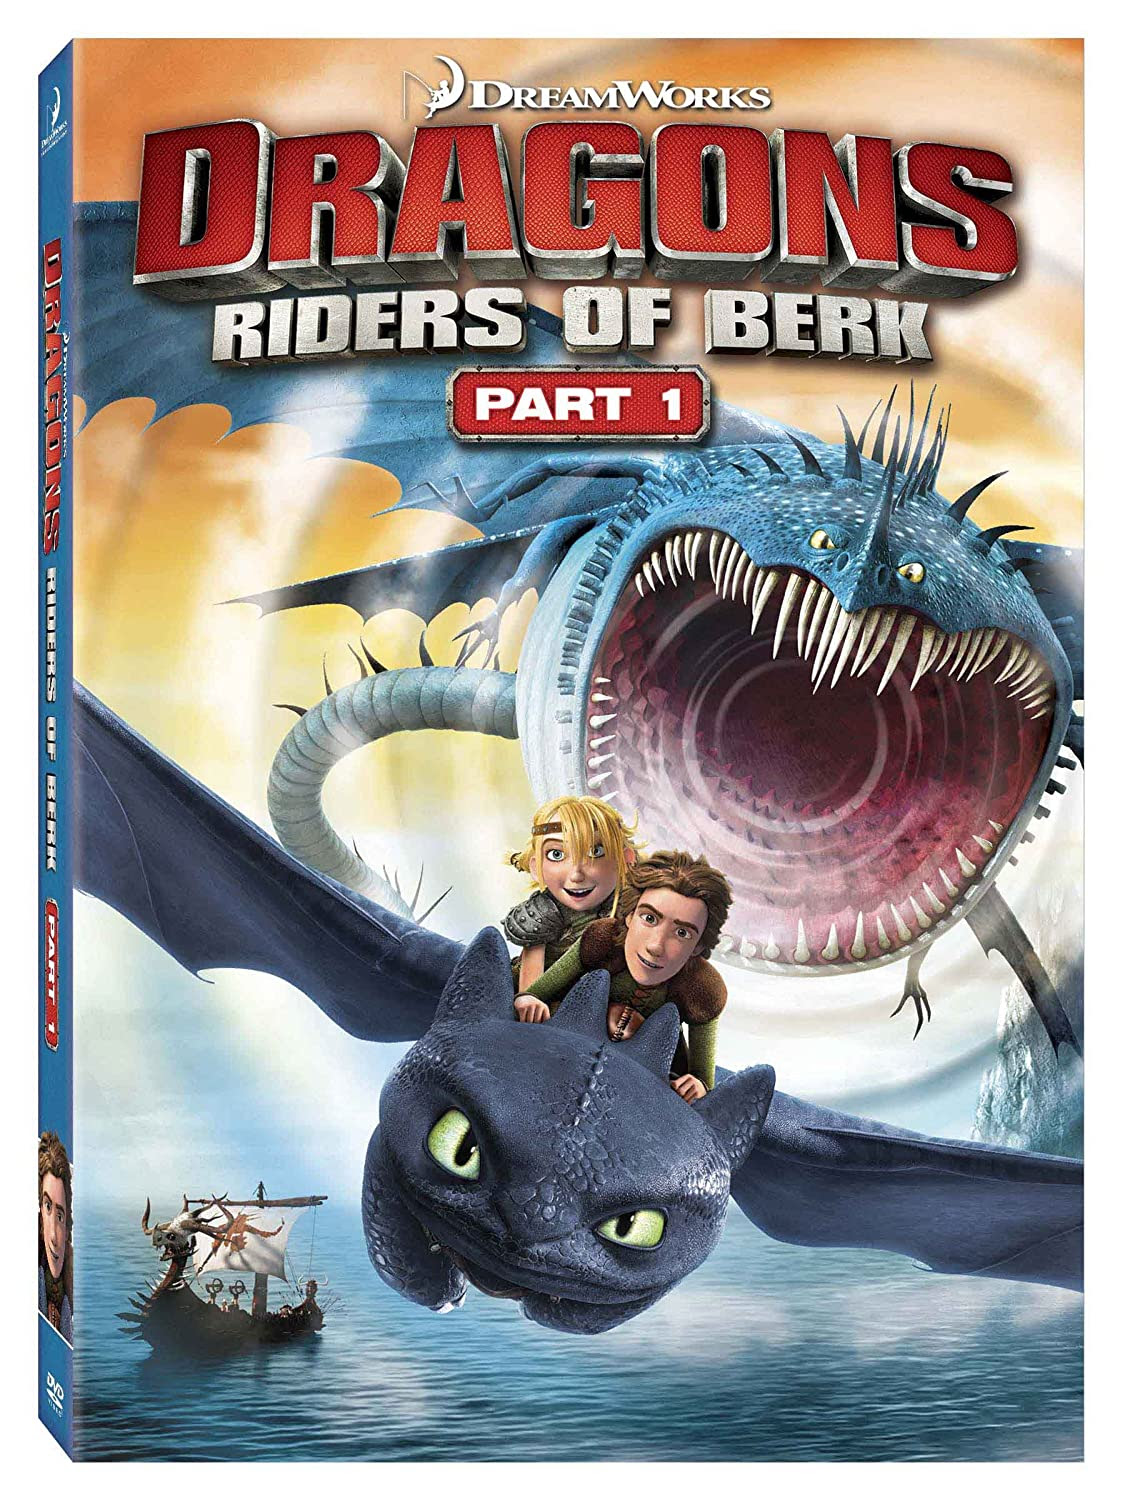 Dragons: Riders of Berk Parts 1